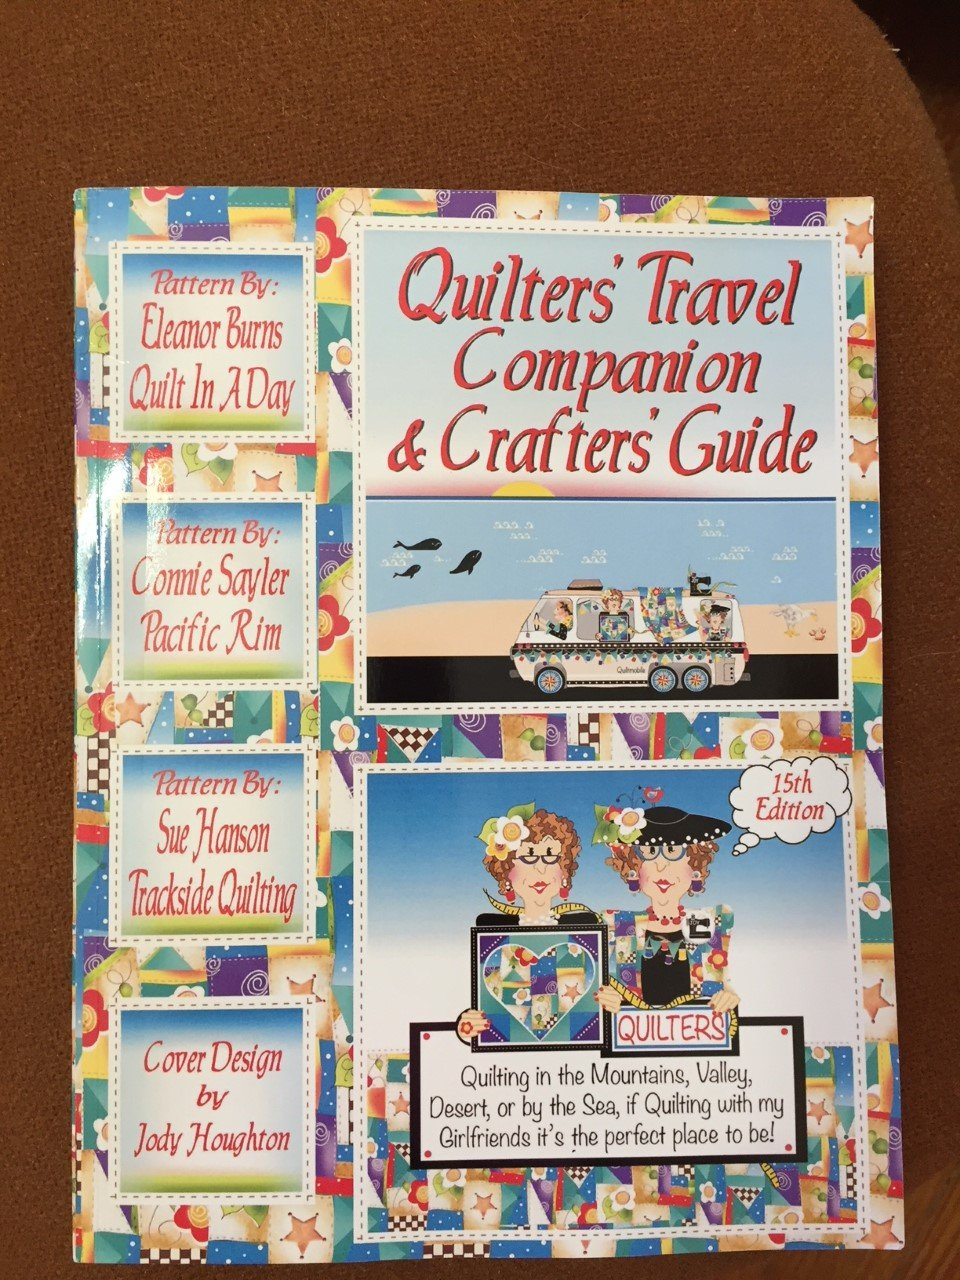 Quilters Travel Companion